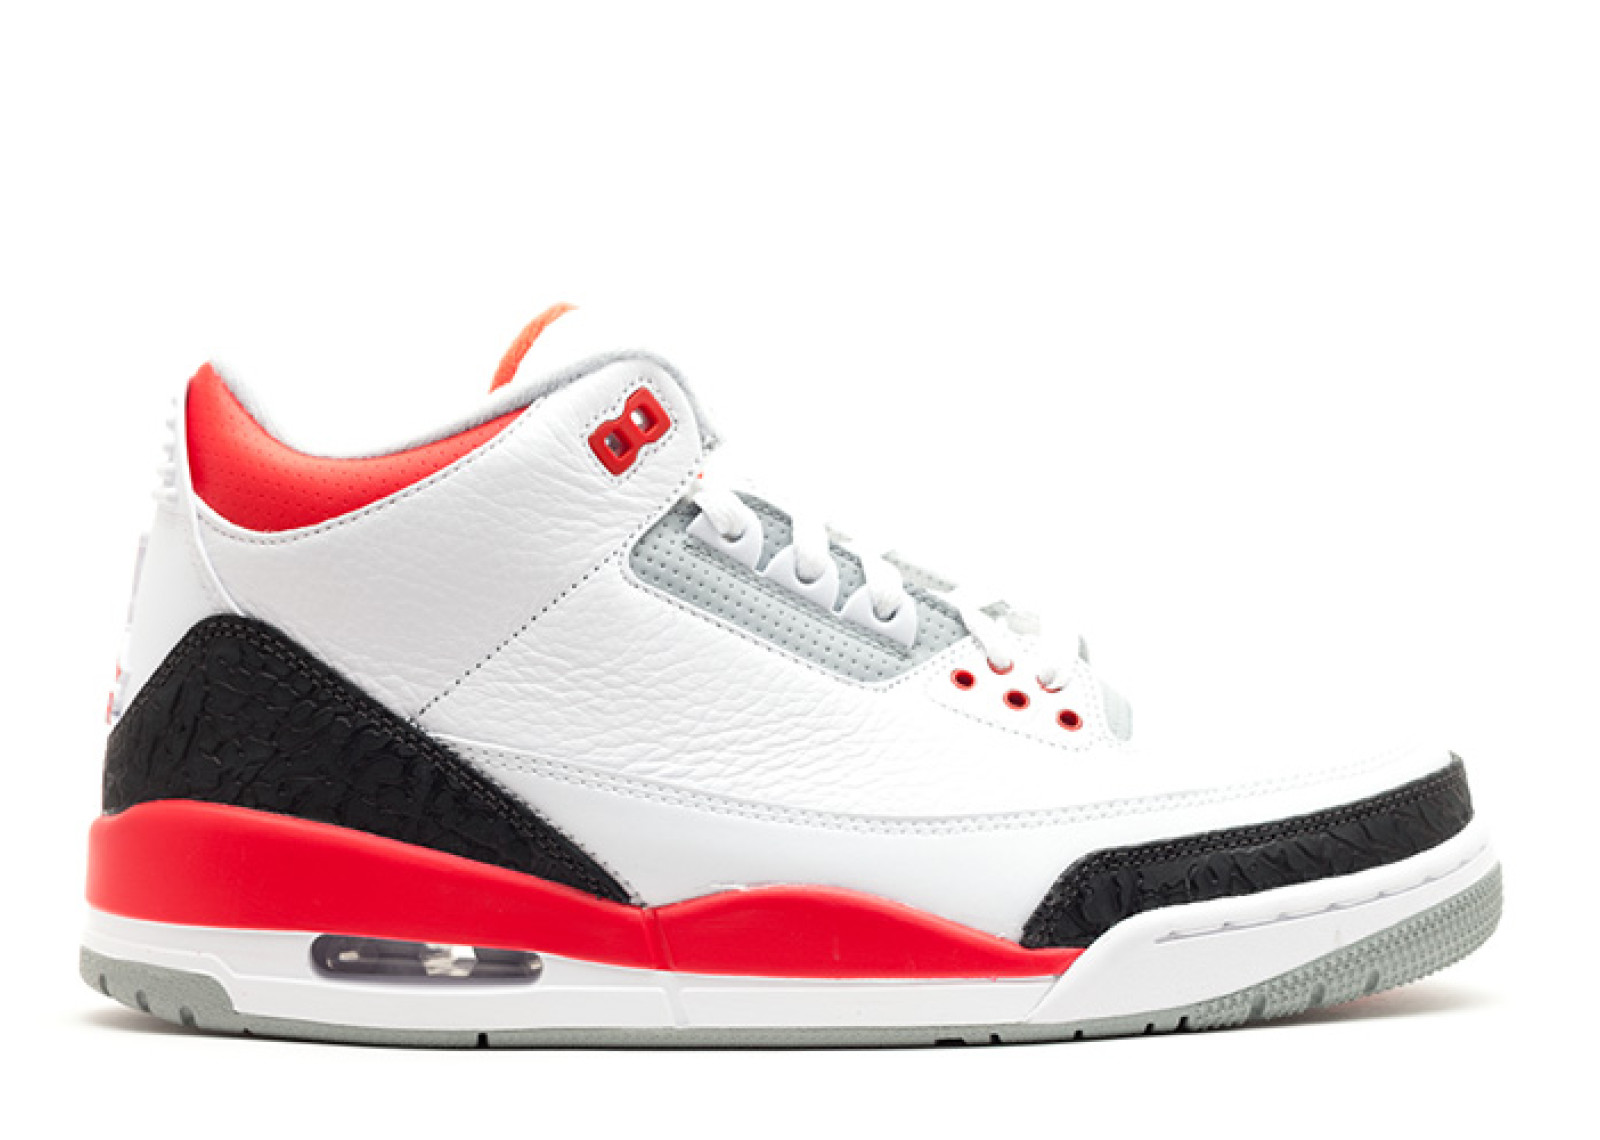 jordan 3 red and black